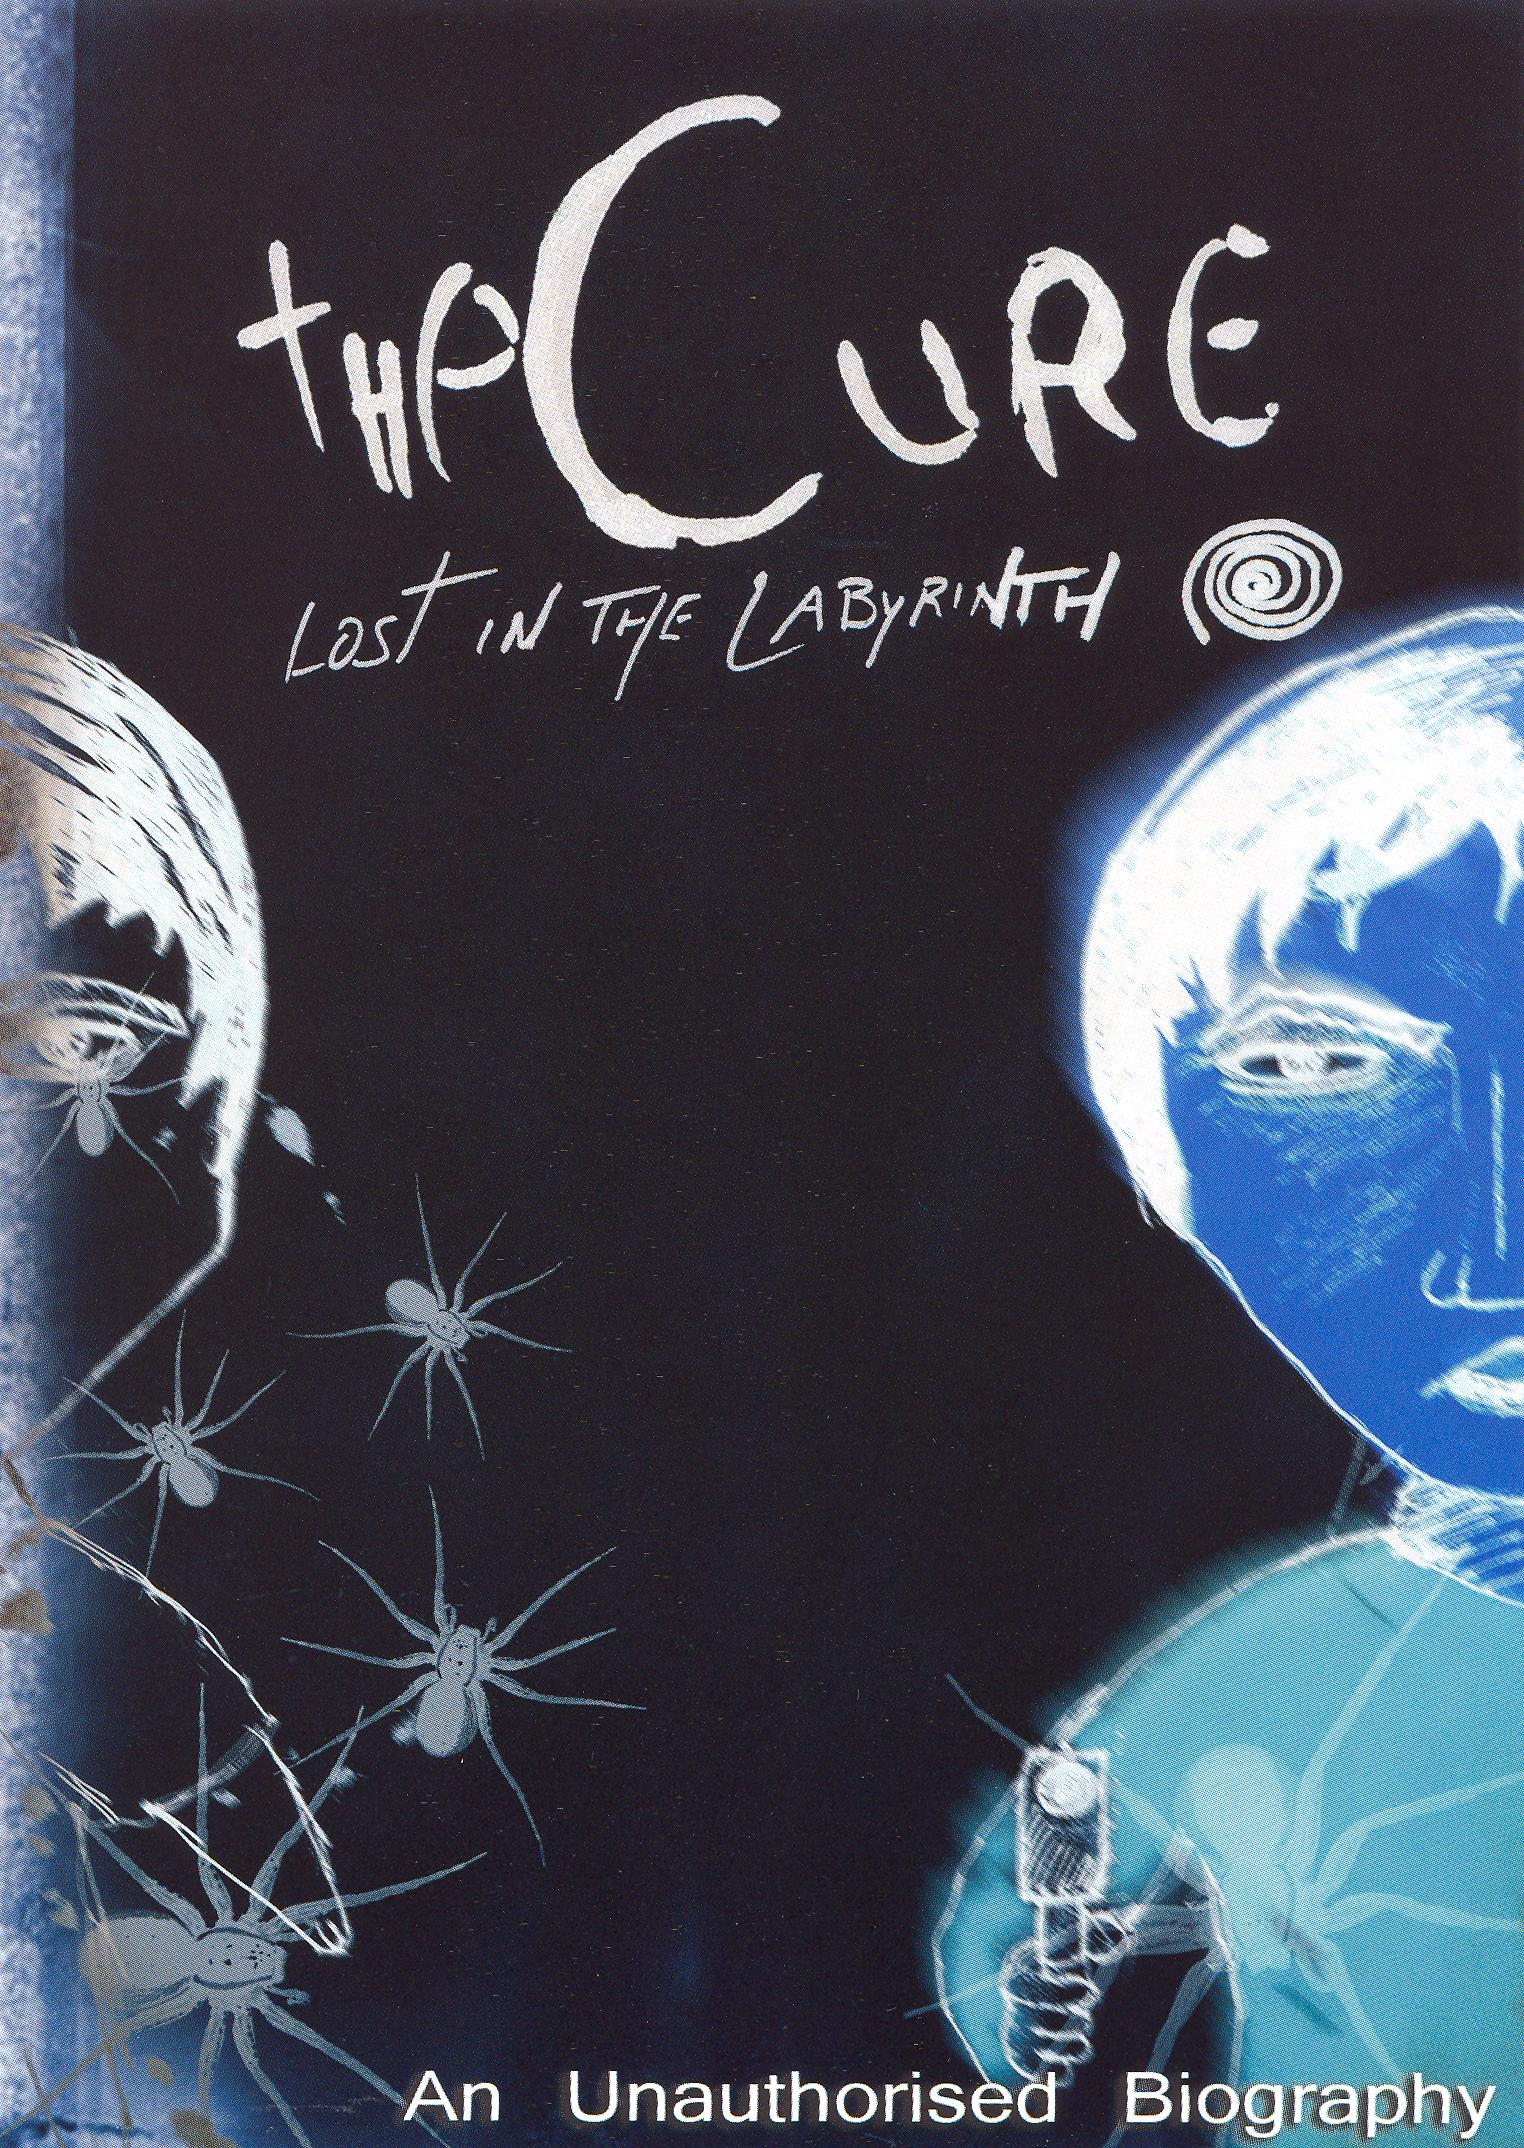 The Cure: Lost in the Labyrinth